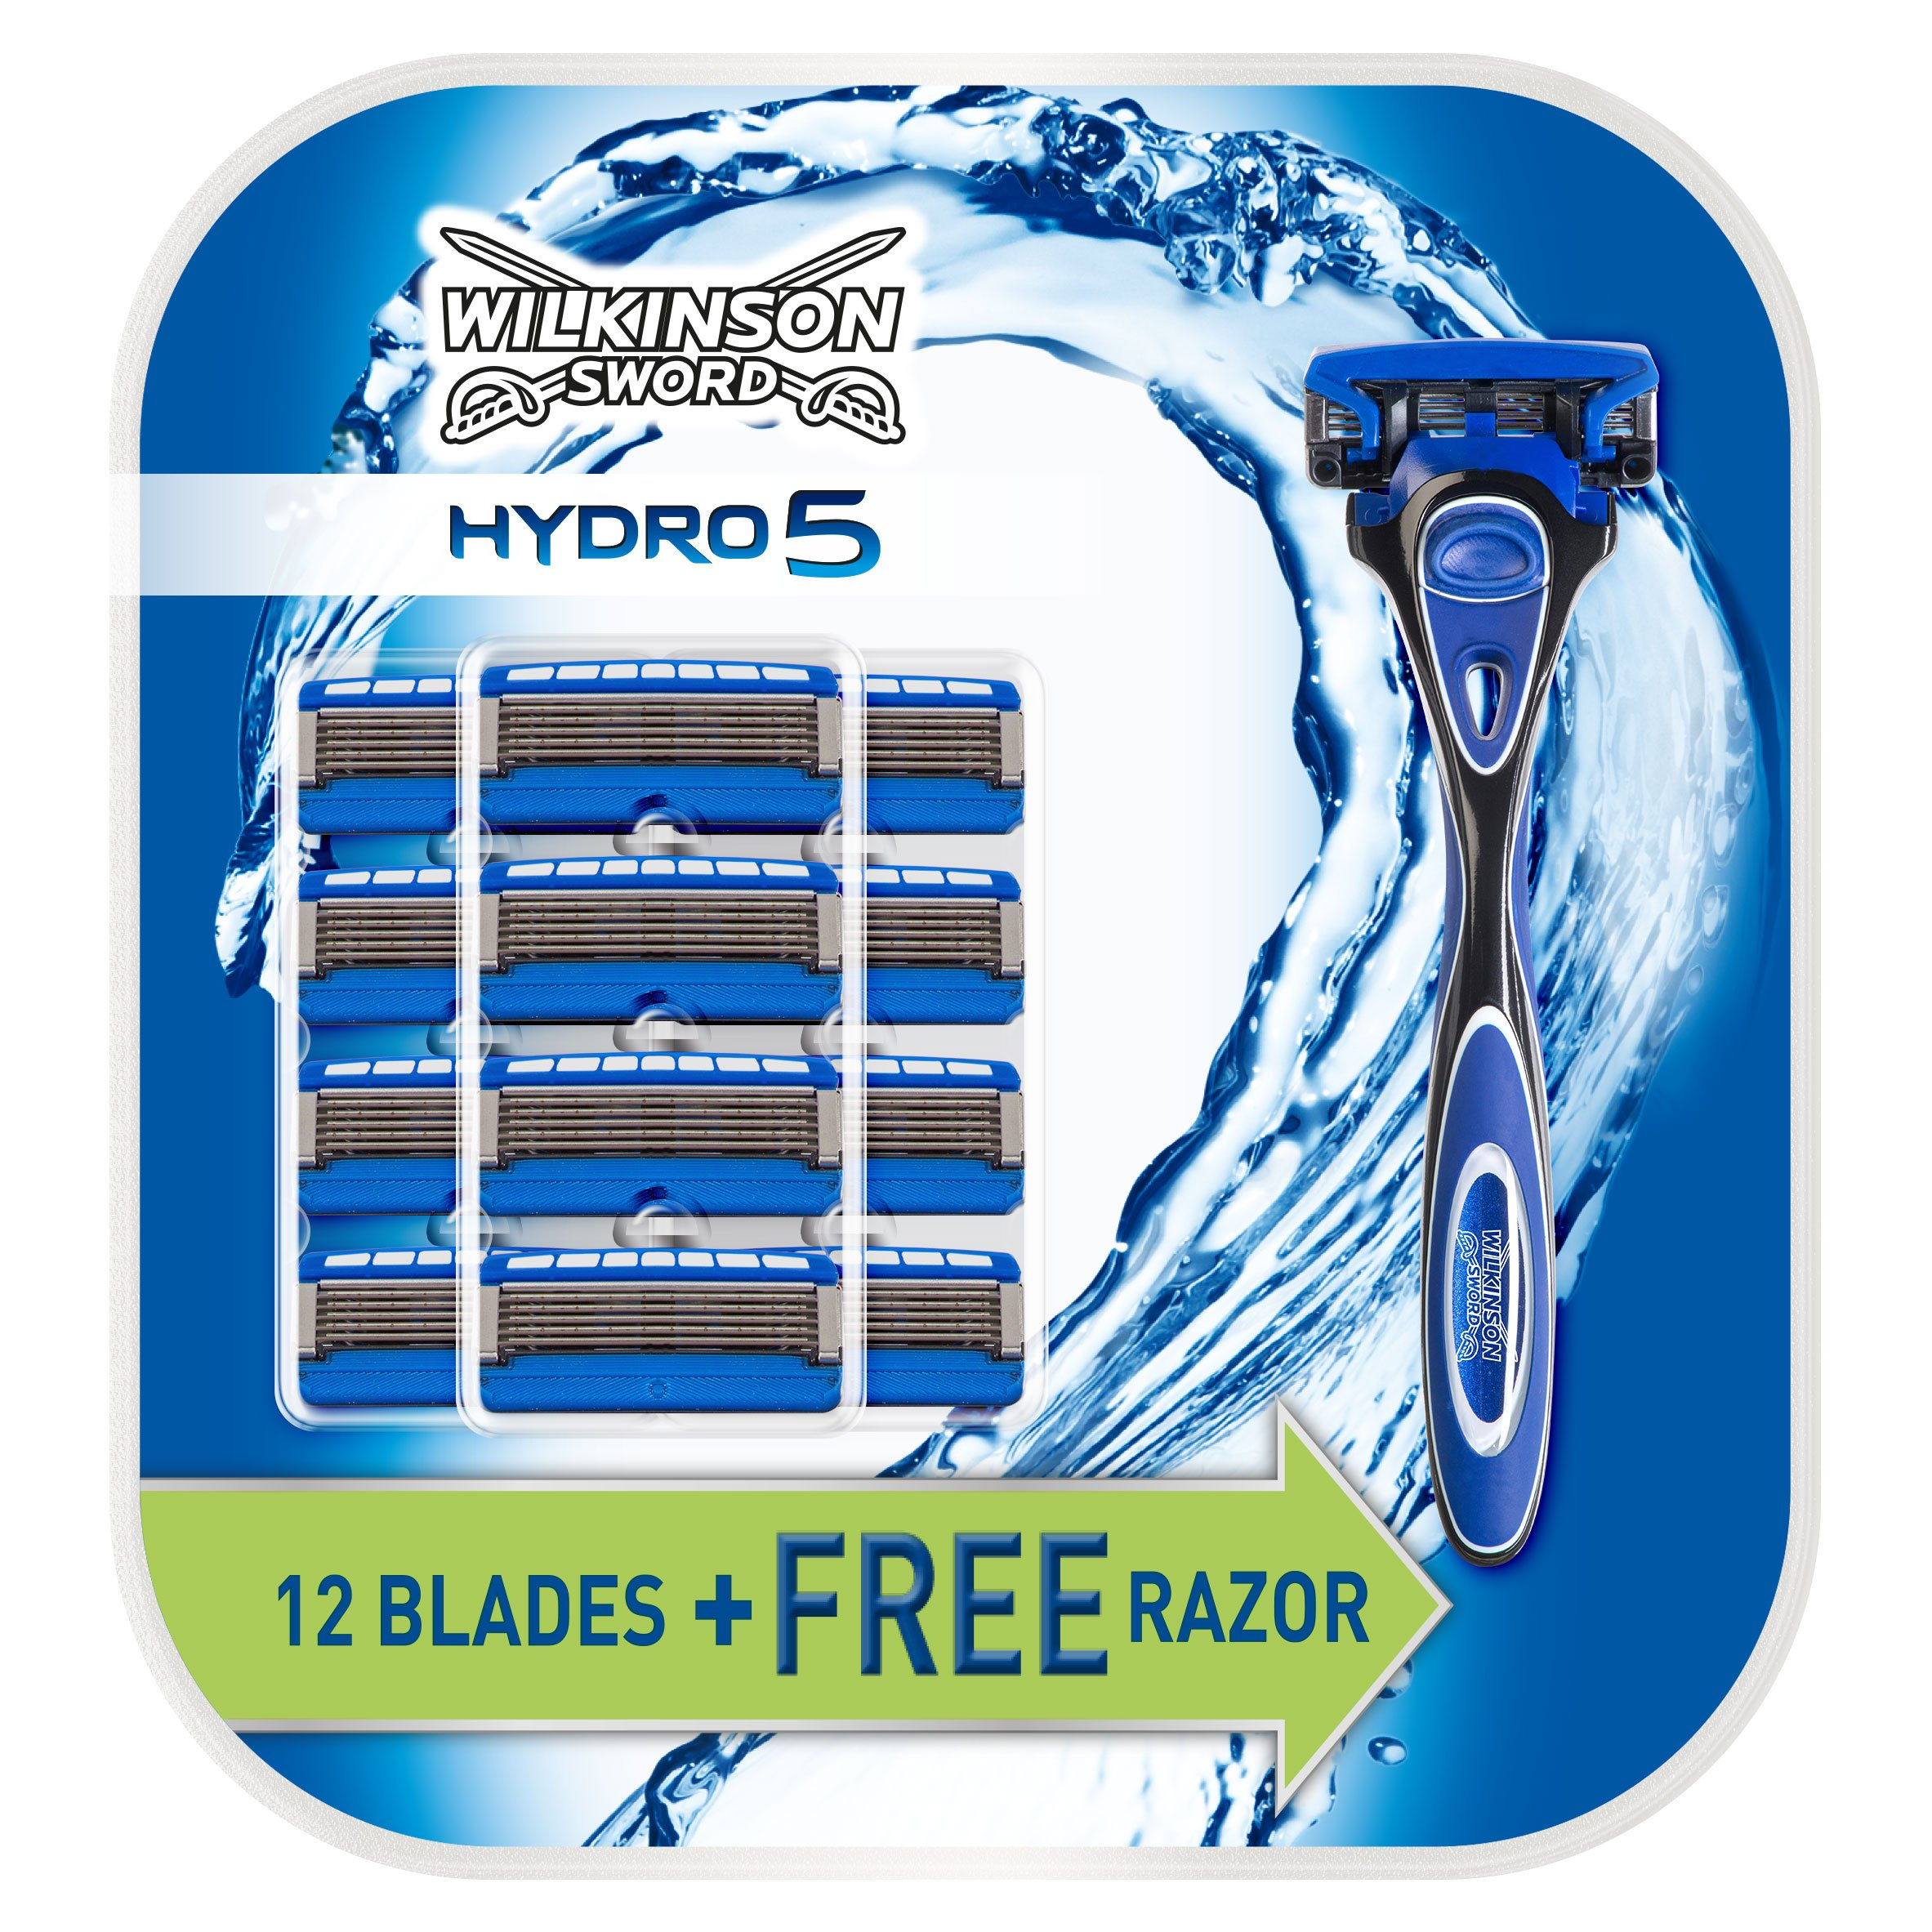 Wilkinson Sword Hydro 5 Razor with 13 Blade Refills product image